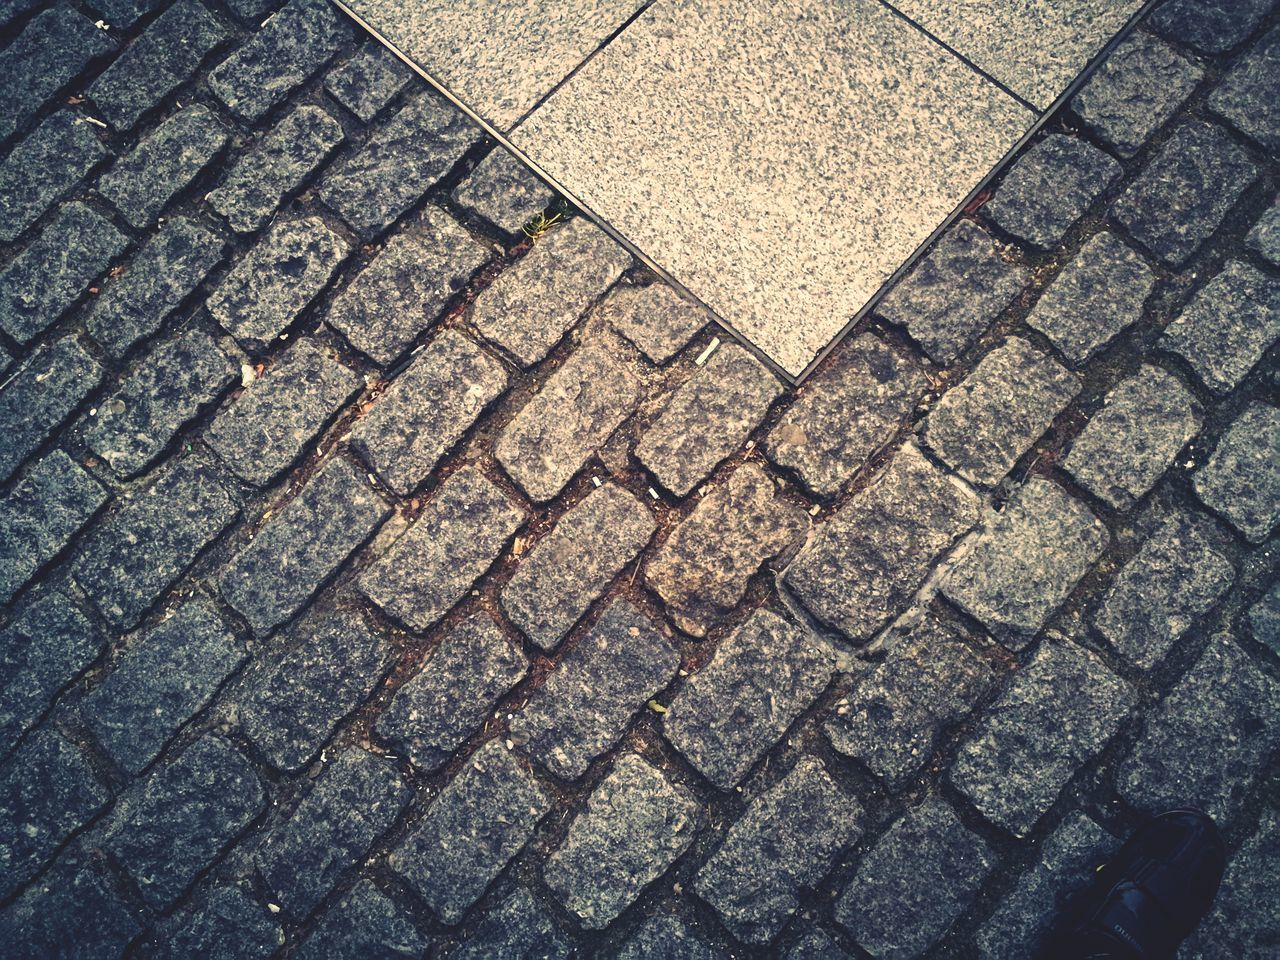 pattern, backgrounds, street, full frame, footpath, high angle view, no people, cobblestone, stone, textured, paving stone, day, sidewalk, geometric shape, city, stone material, outdoors, design, shape, transportation